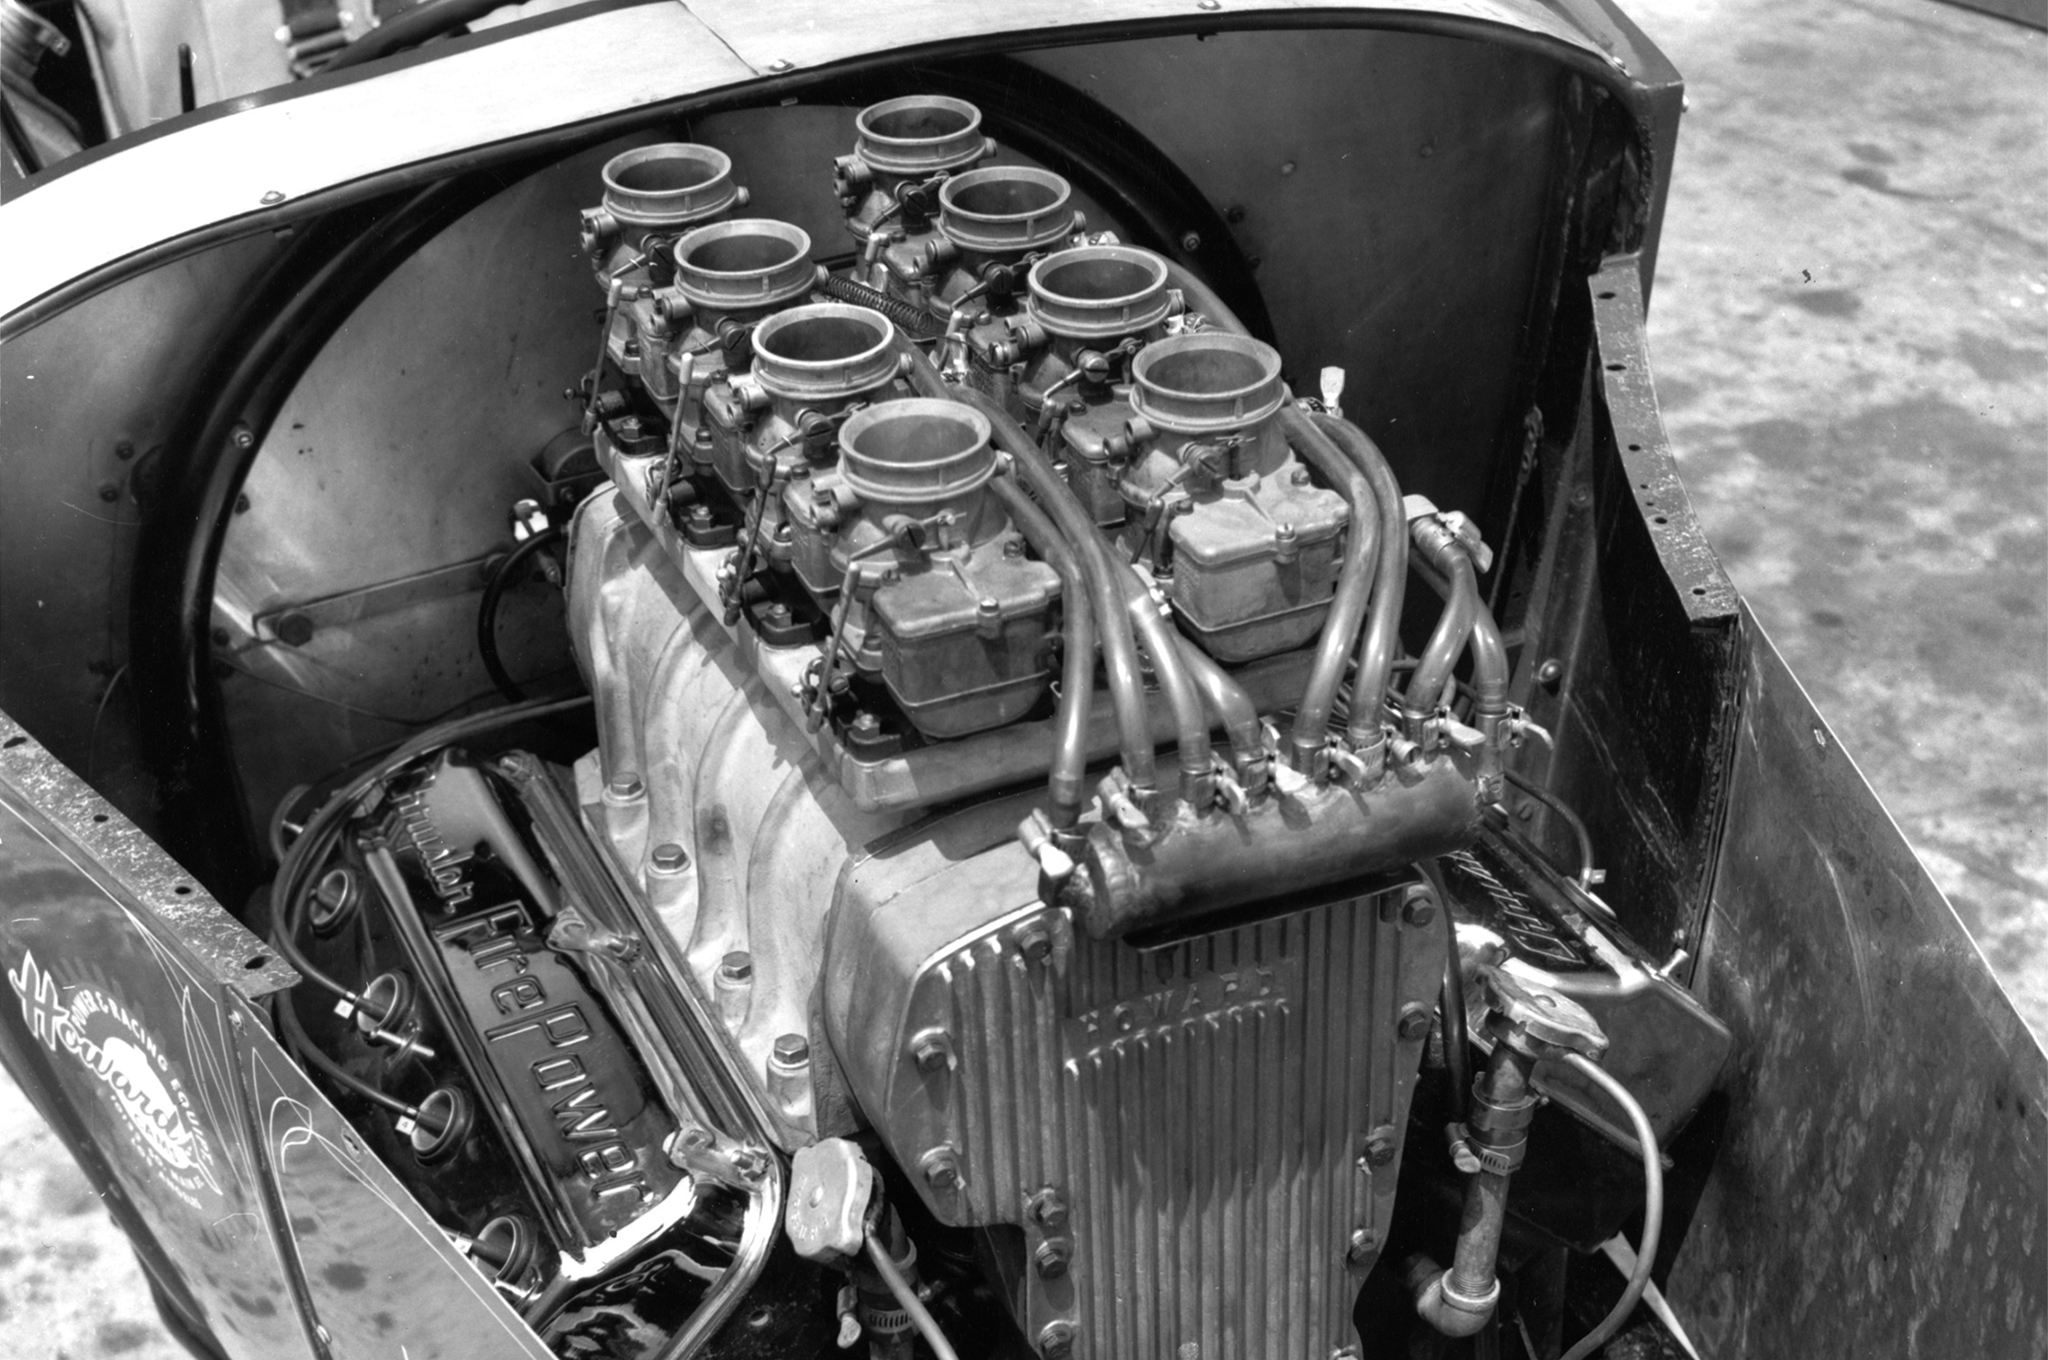 When Scott photographed the car, the engine had grown to 412 cubes and sported eight Stromberg 48s feeding a GMC 4-71 blower. In the block were a Howard 295 cam, Howard lifters, Forged-True pistons, and '55 heads. At 7:1 compression, the Hemi made 400 hp on gas.